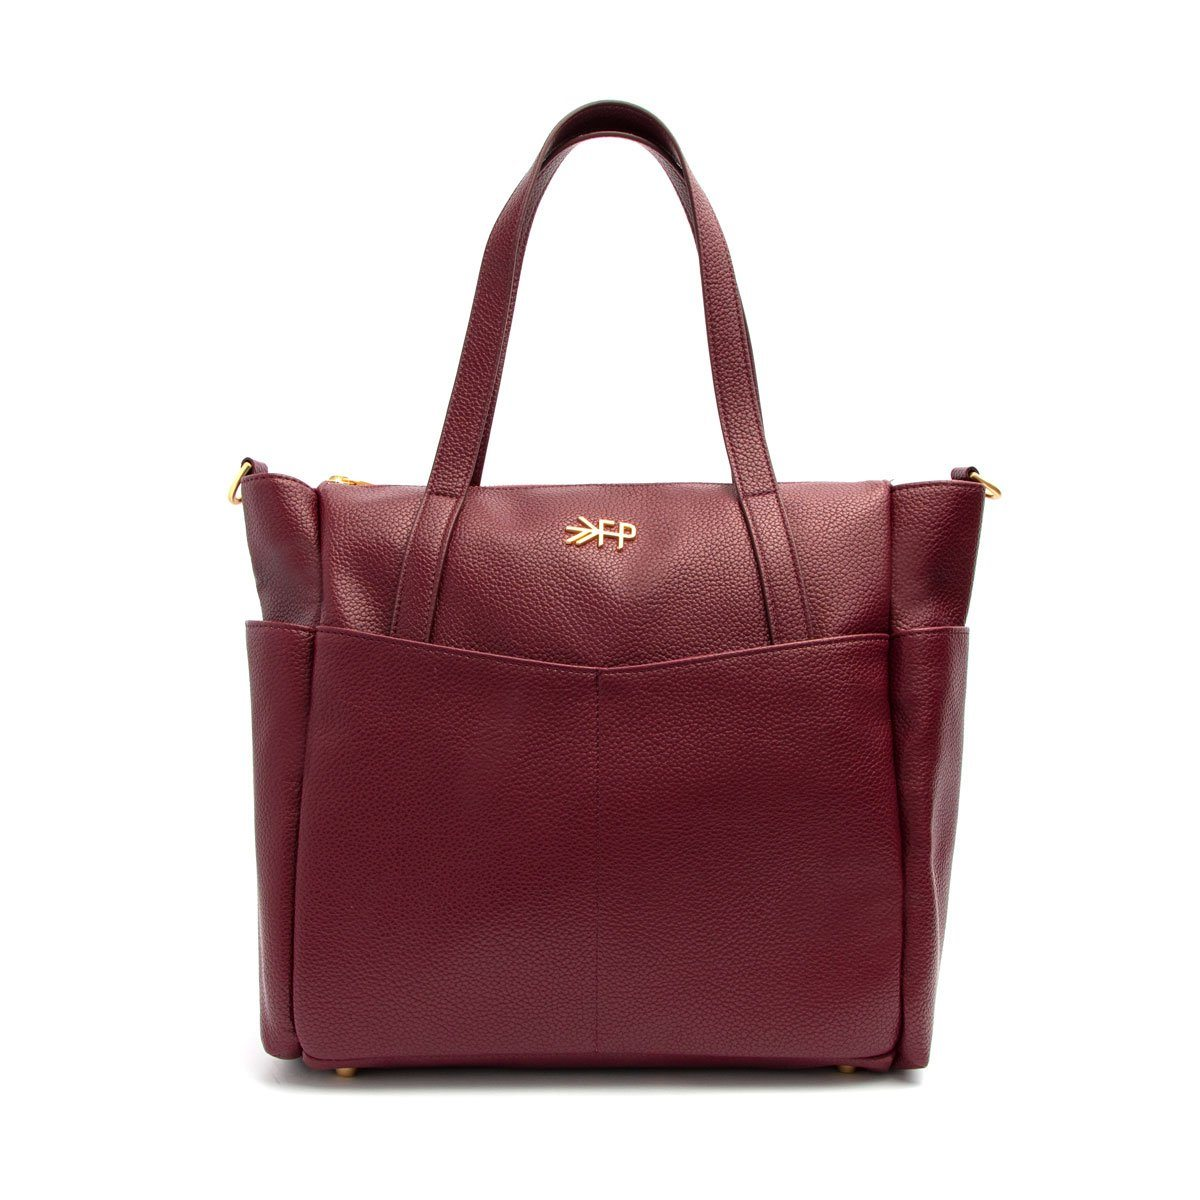 Burgundy Classic Carryall Classic Carryall Bags